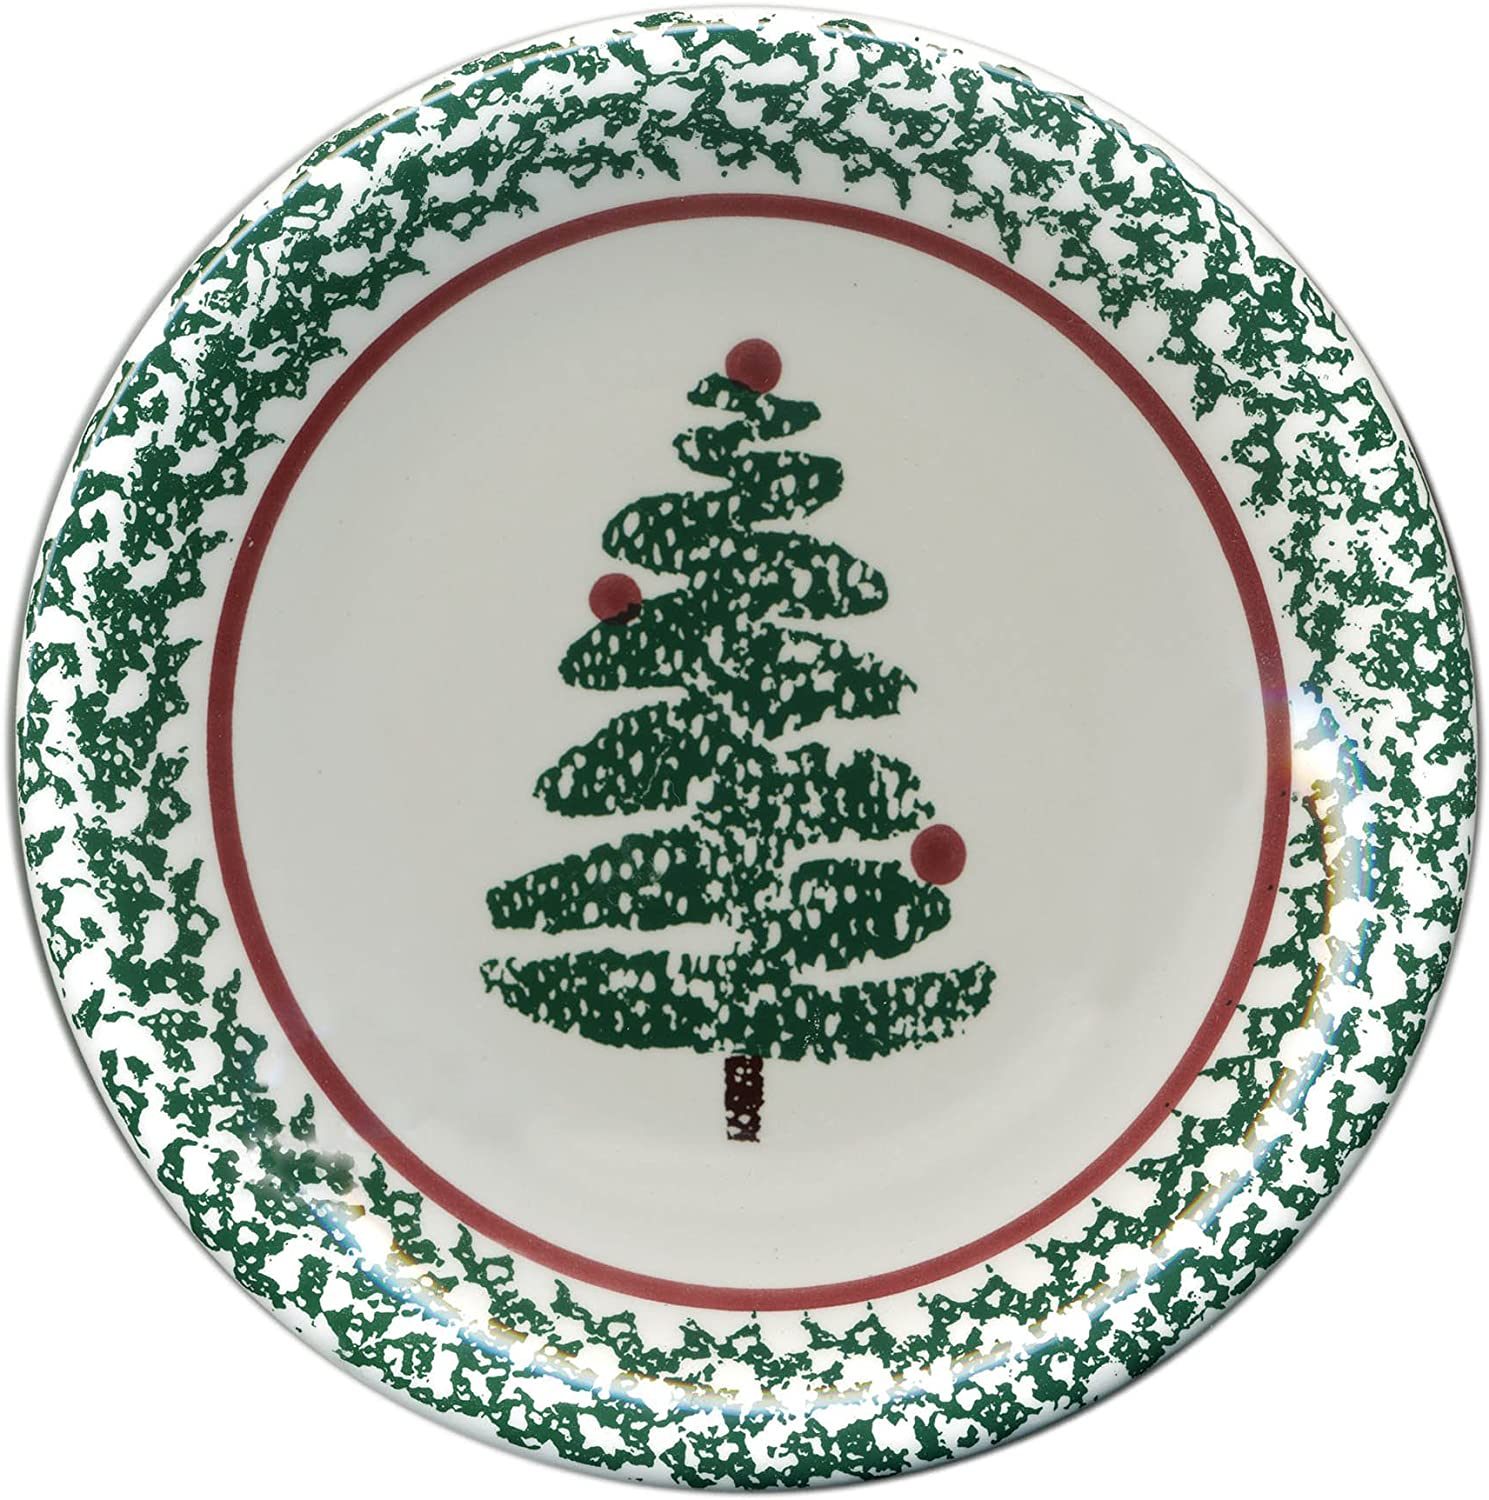 Furio Contemporary Casuals, 4 Holiday Christmas Tree Salad Plates